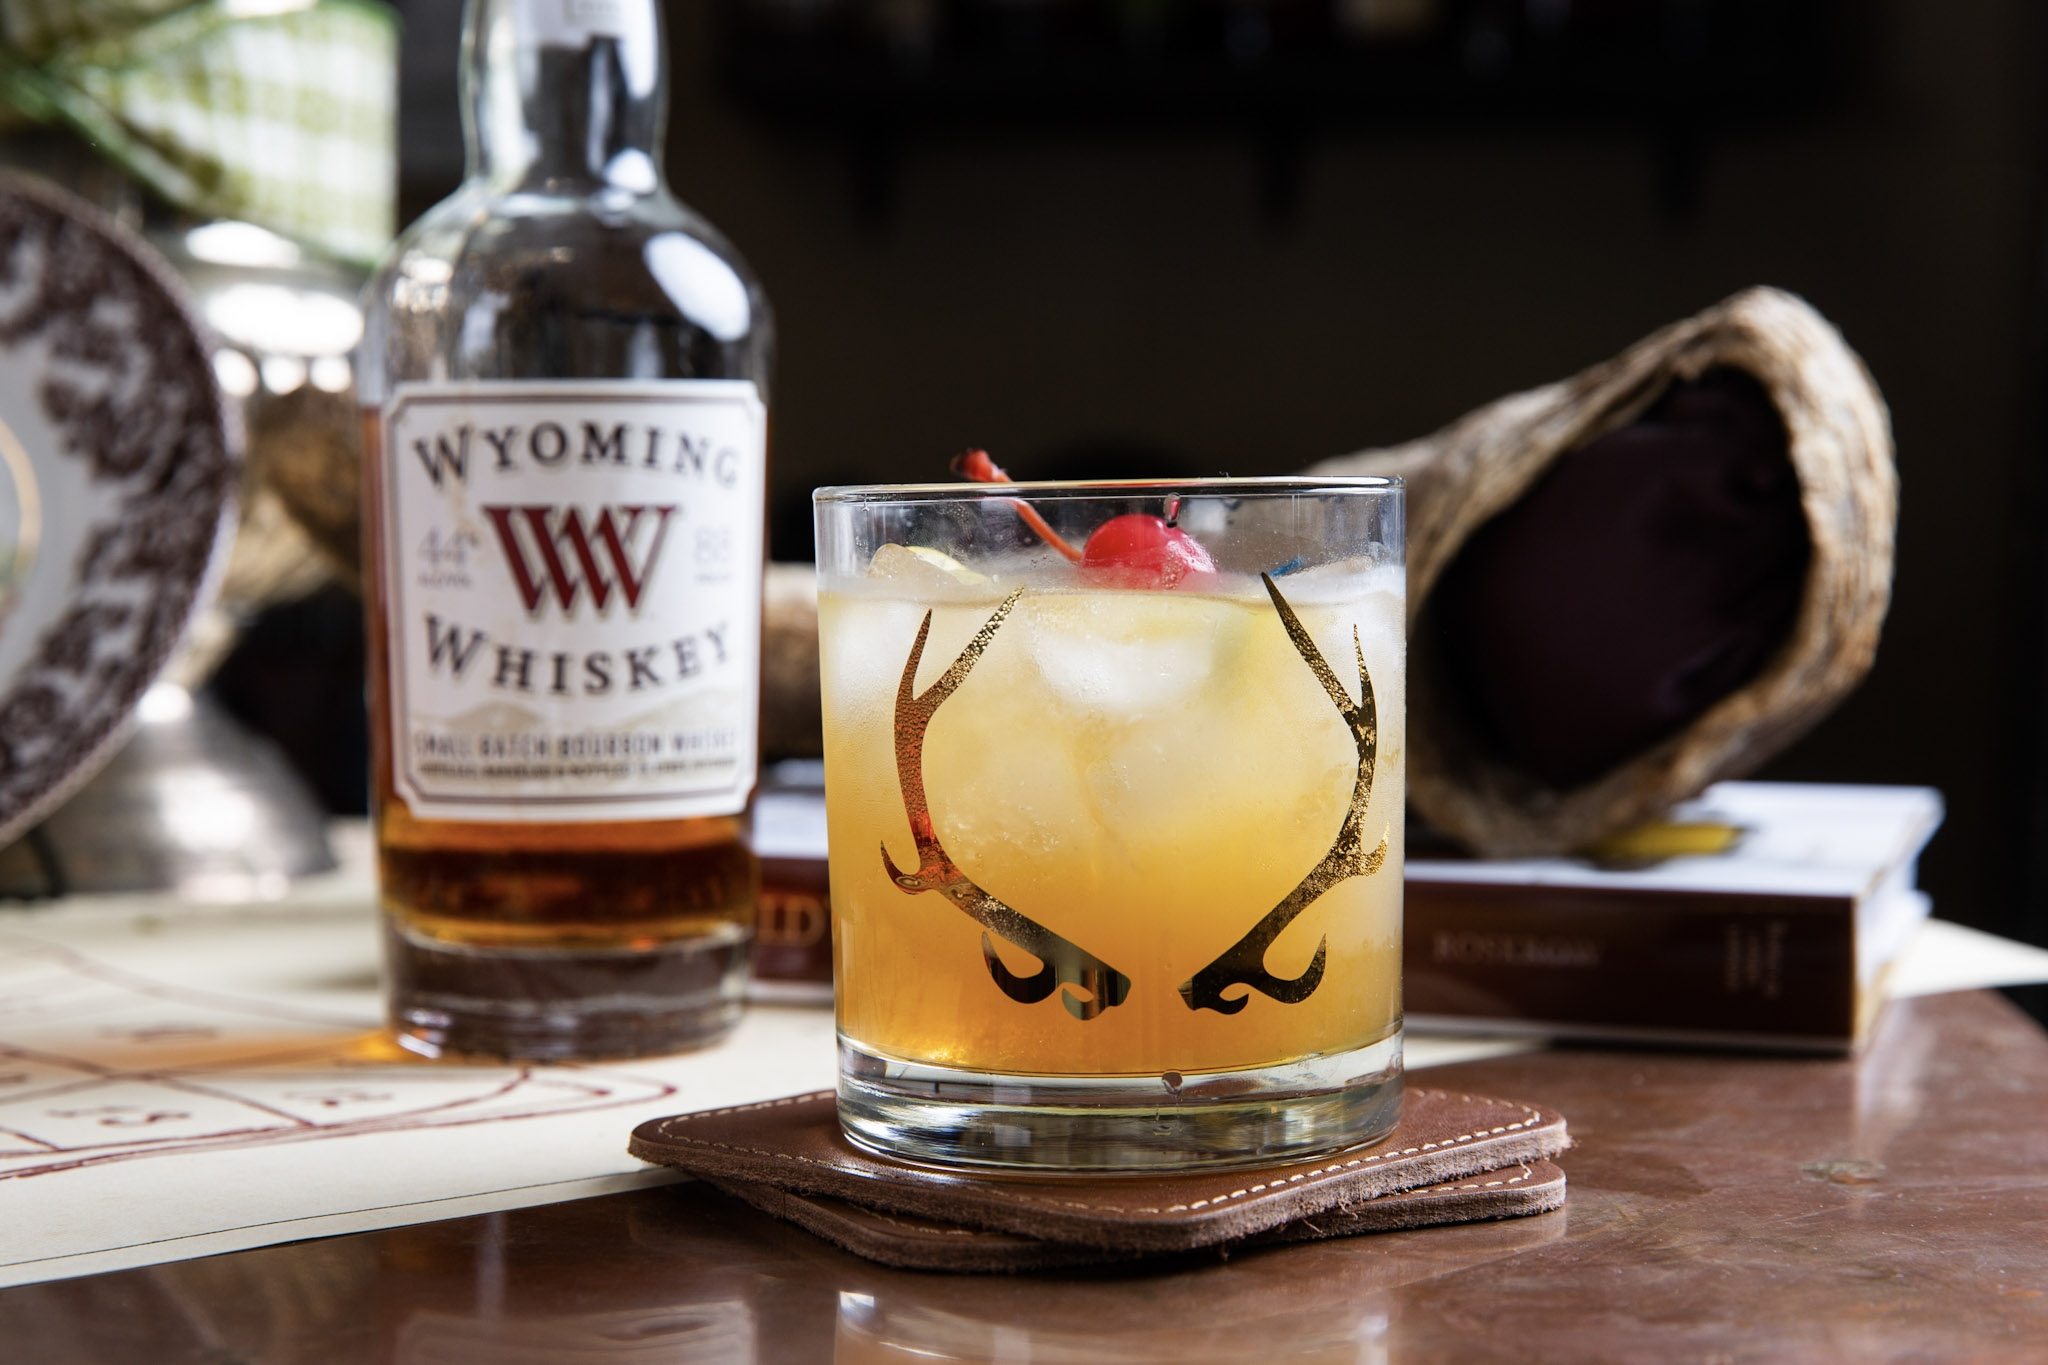 wyuoming whiskey sour.jpg